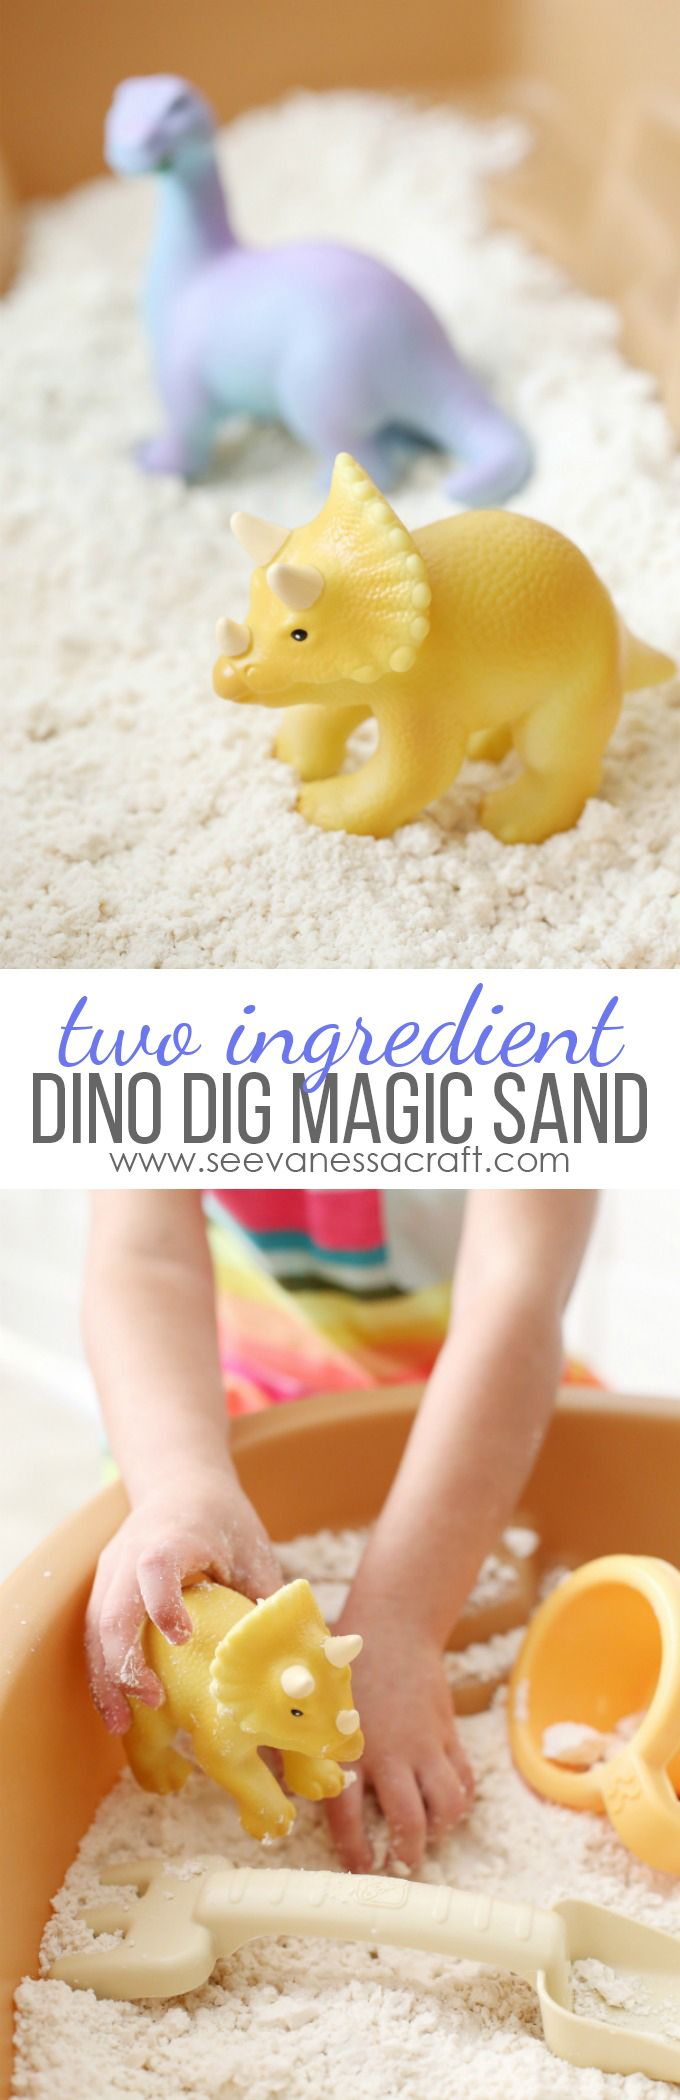 2 Ingredient Dino Dig Magic Moon Sand Recipe - perfect summer boredom buster for kids! #ad